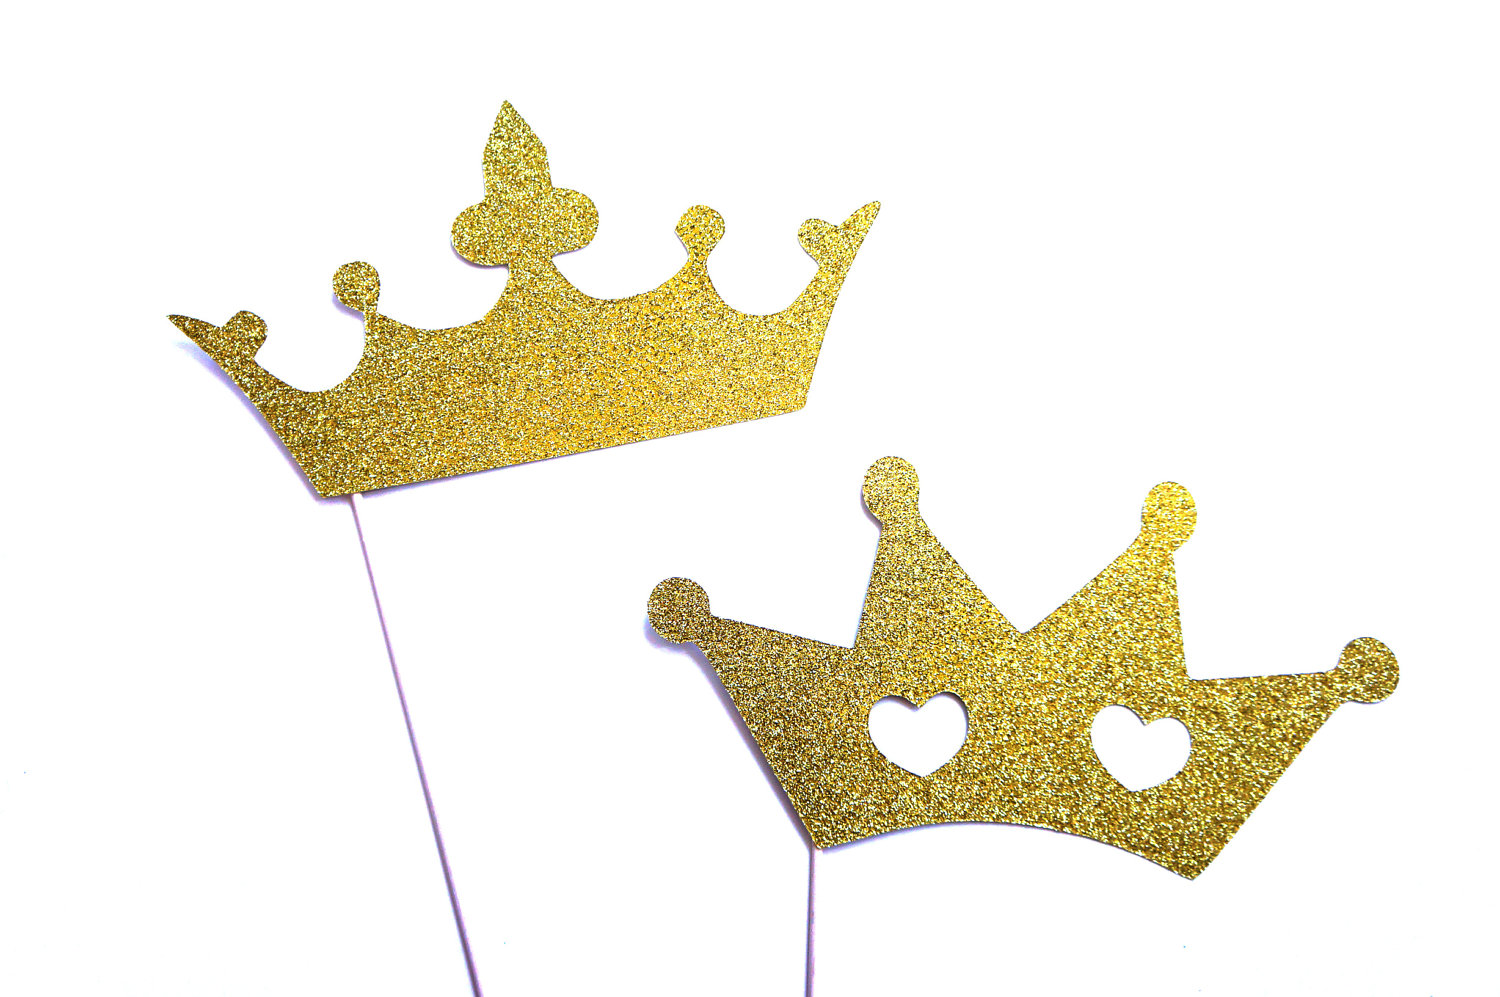 Homecoming king crown clipart png free library King and queen crowns clipart - ClipartFest png free library